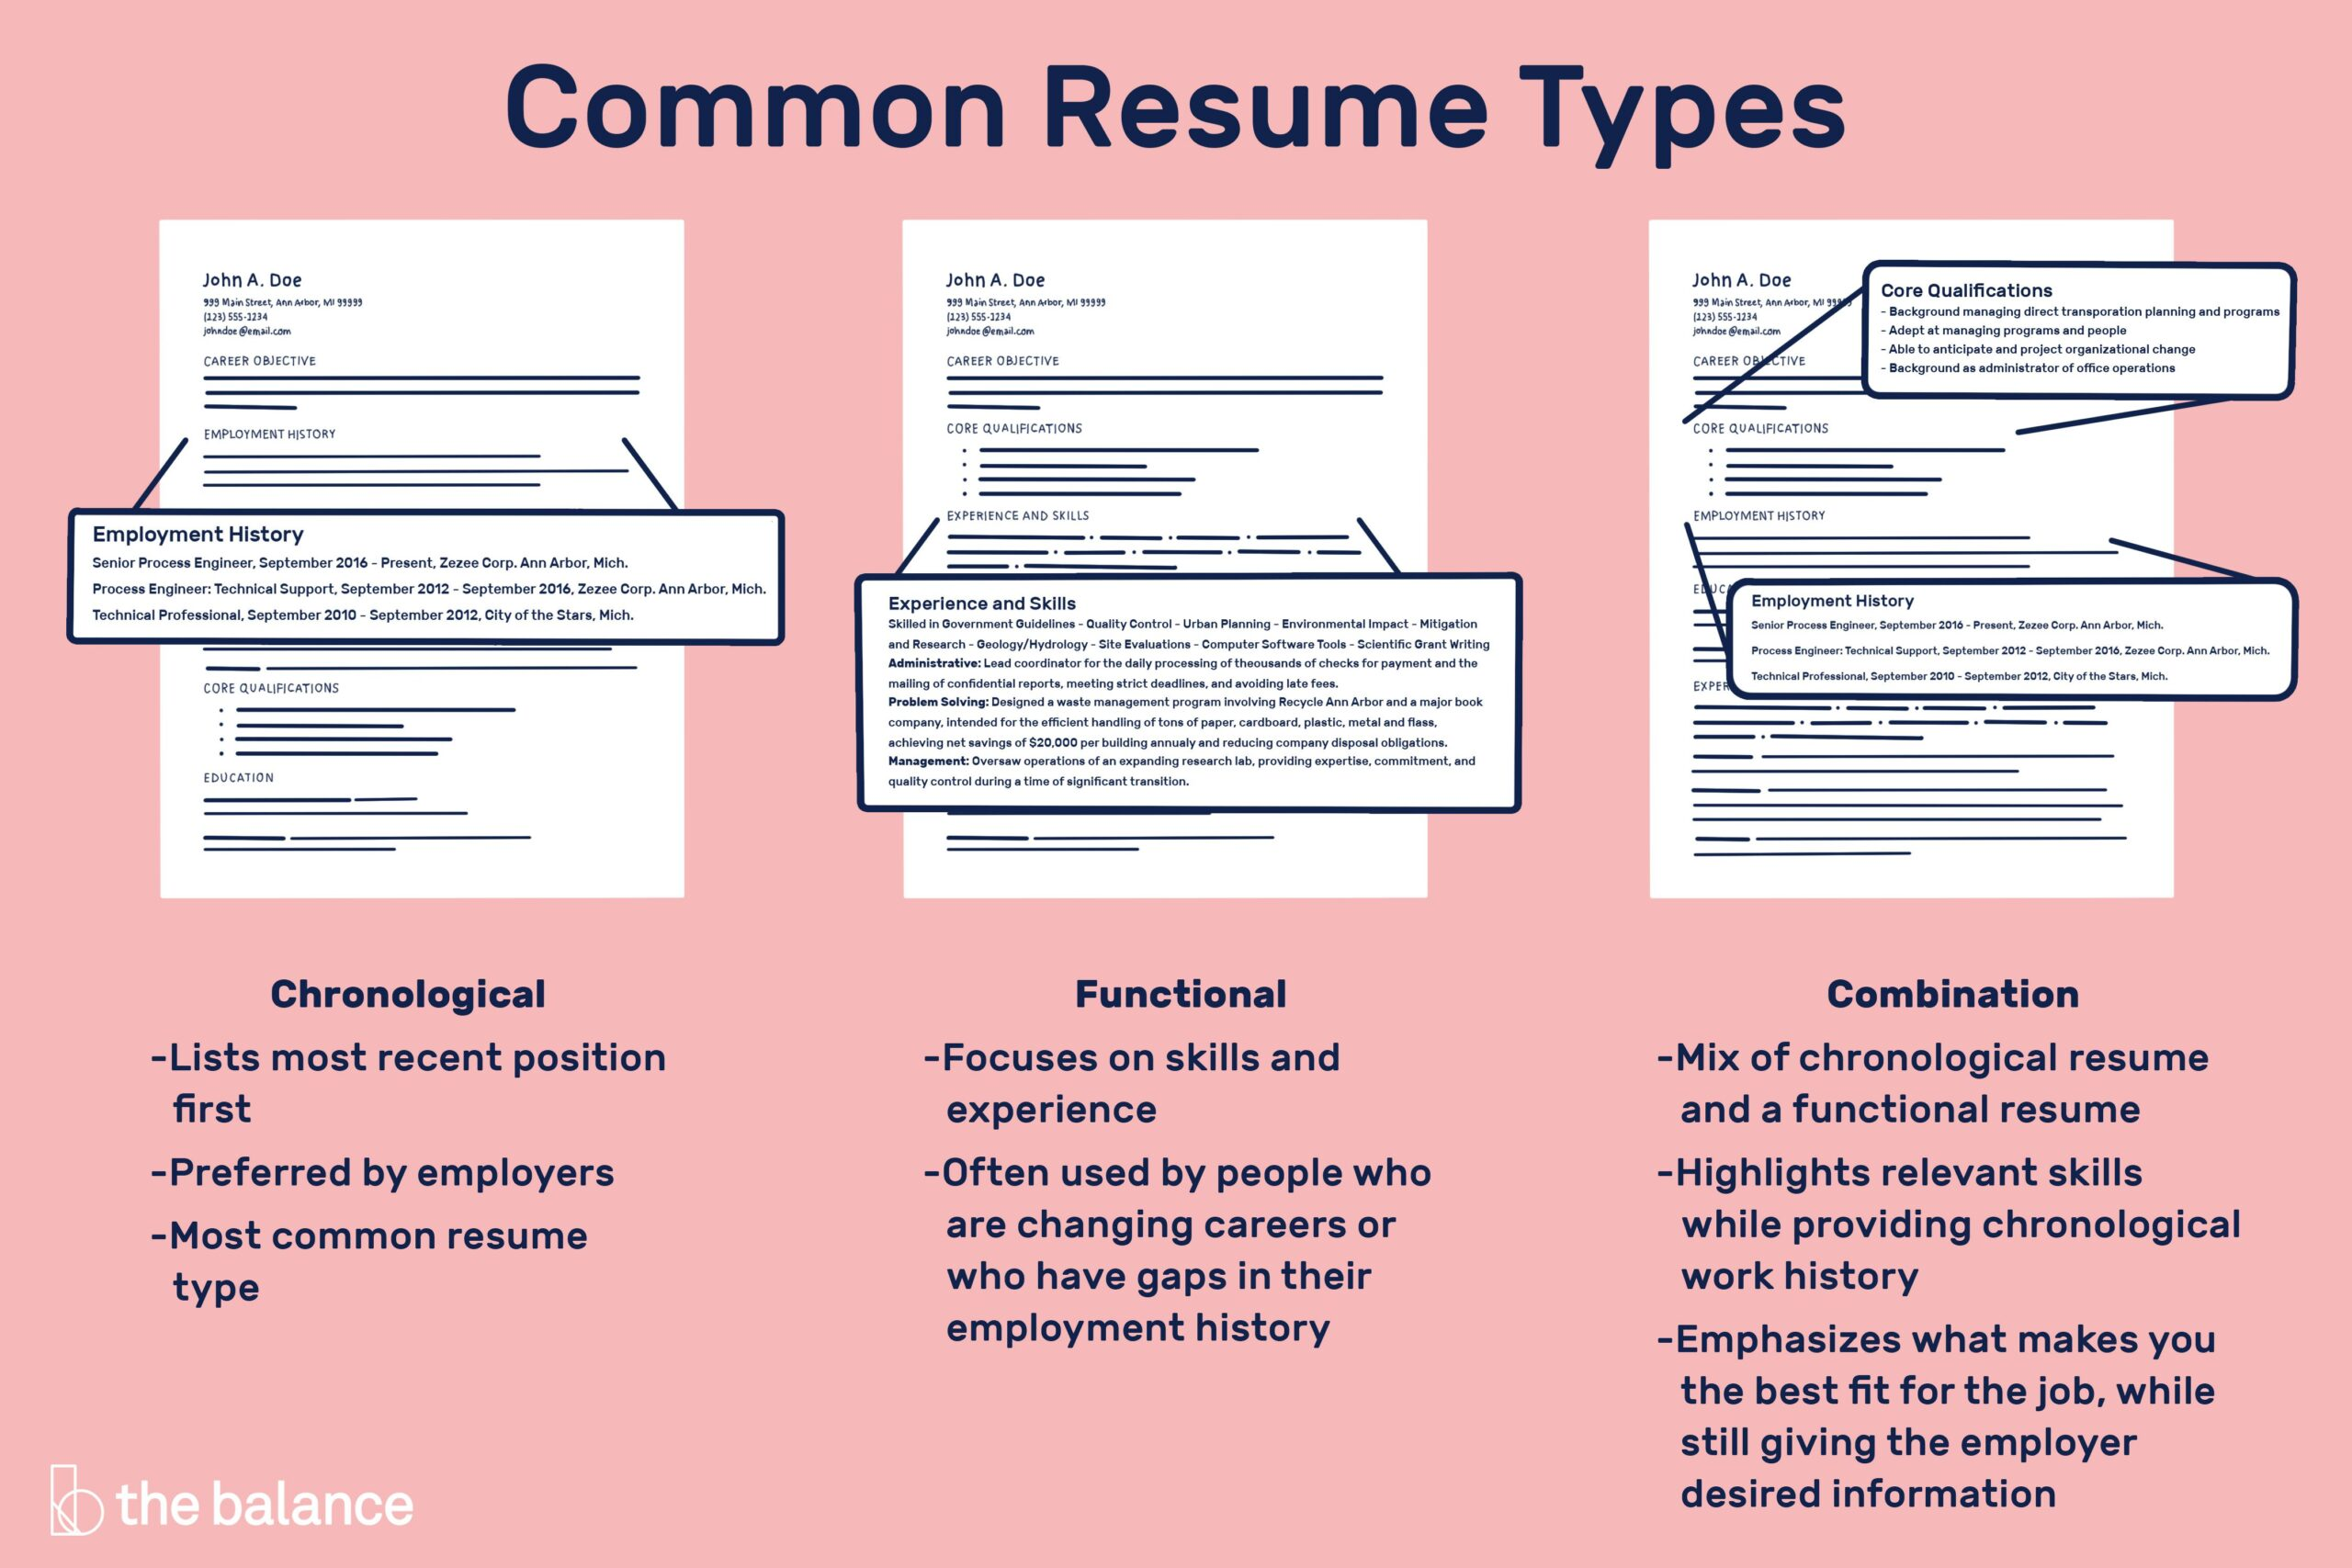 different resume types most common font chronological functional combination 2063235v4 Resume Most Common Resume Font